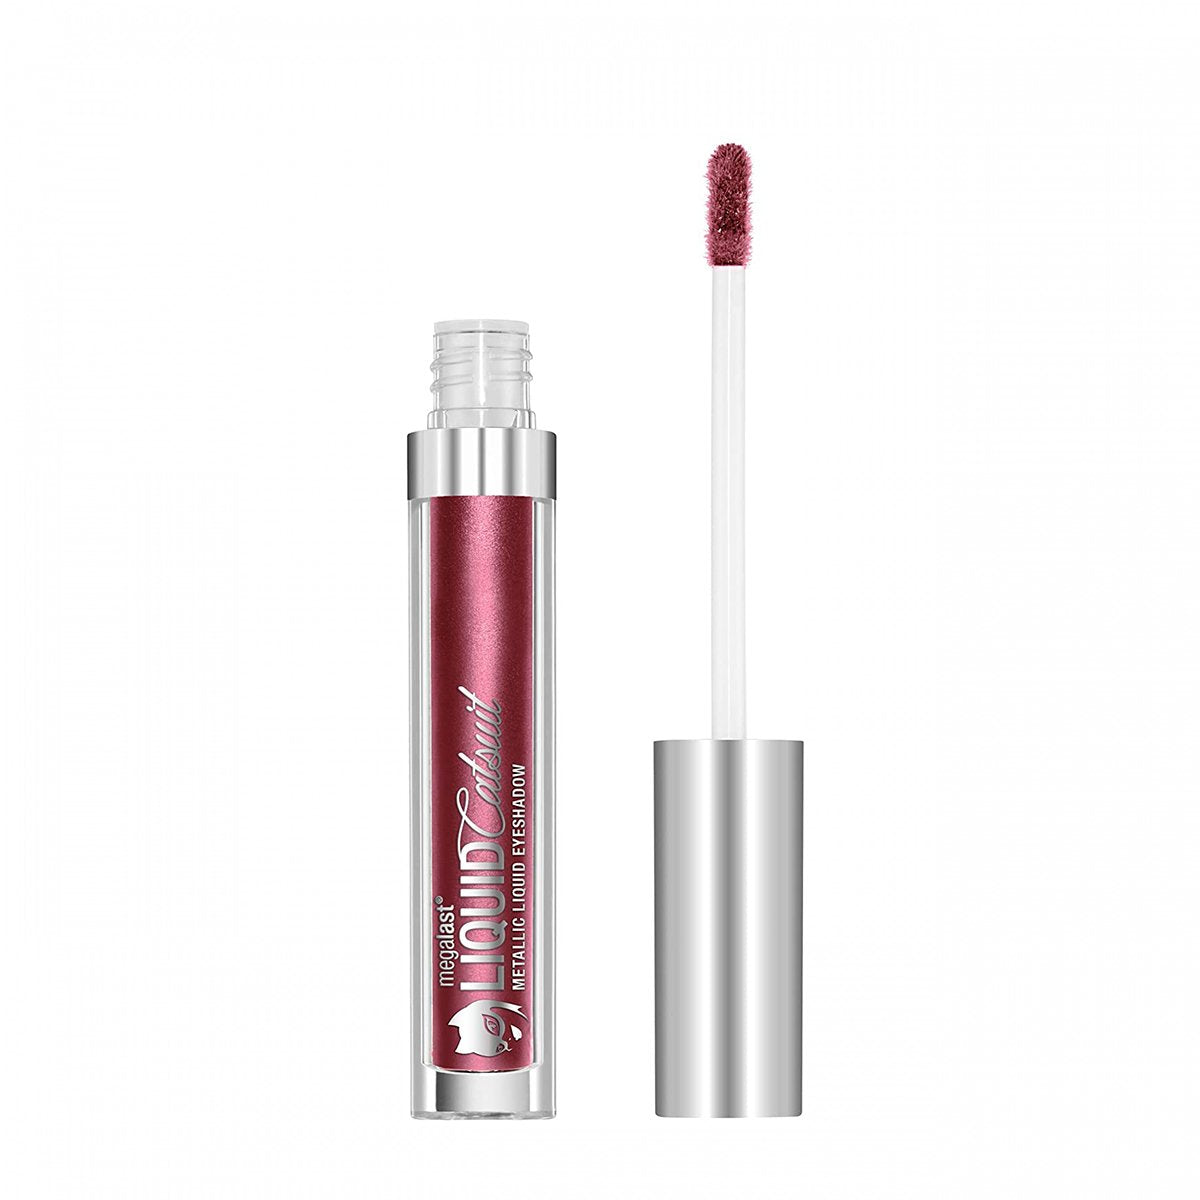 MEGALAST LIQUID CATSUIT METALLIC LIQUID EYESHADOW RUBY HEST - WET N WILD